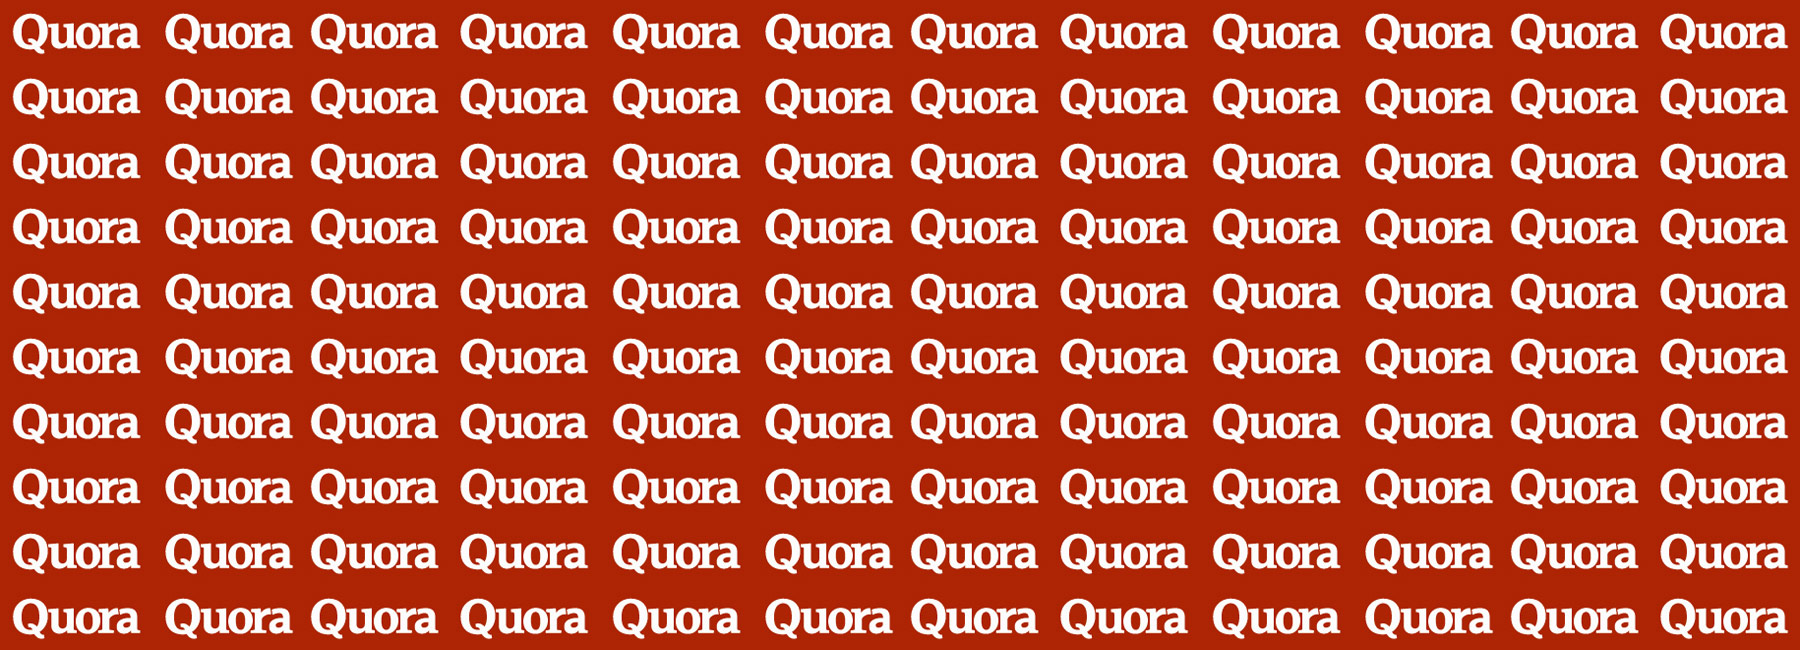 Quora logo written repetitively with a red background